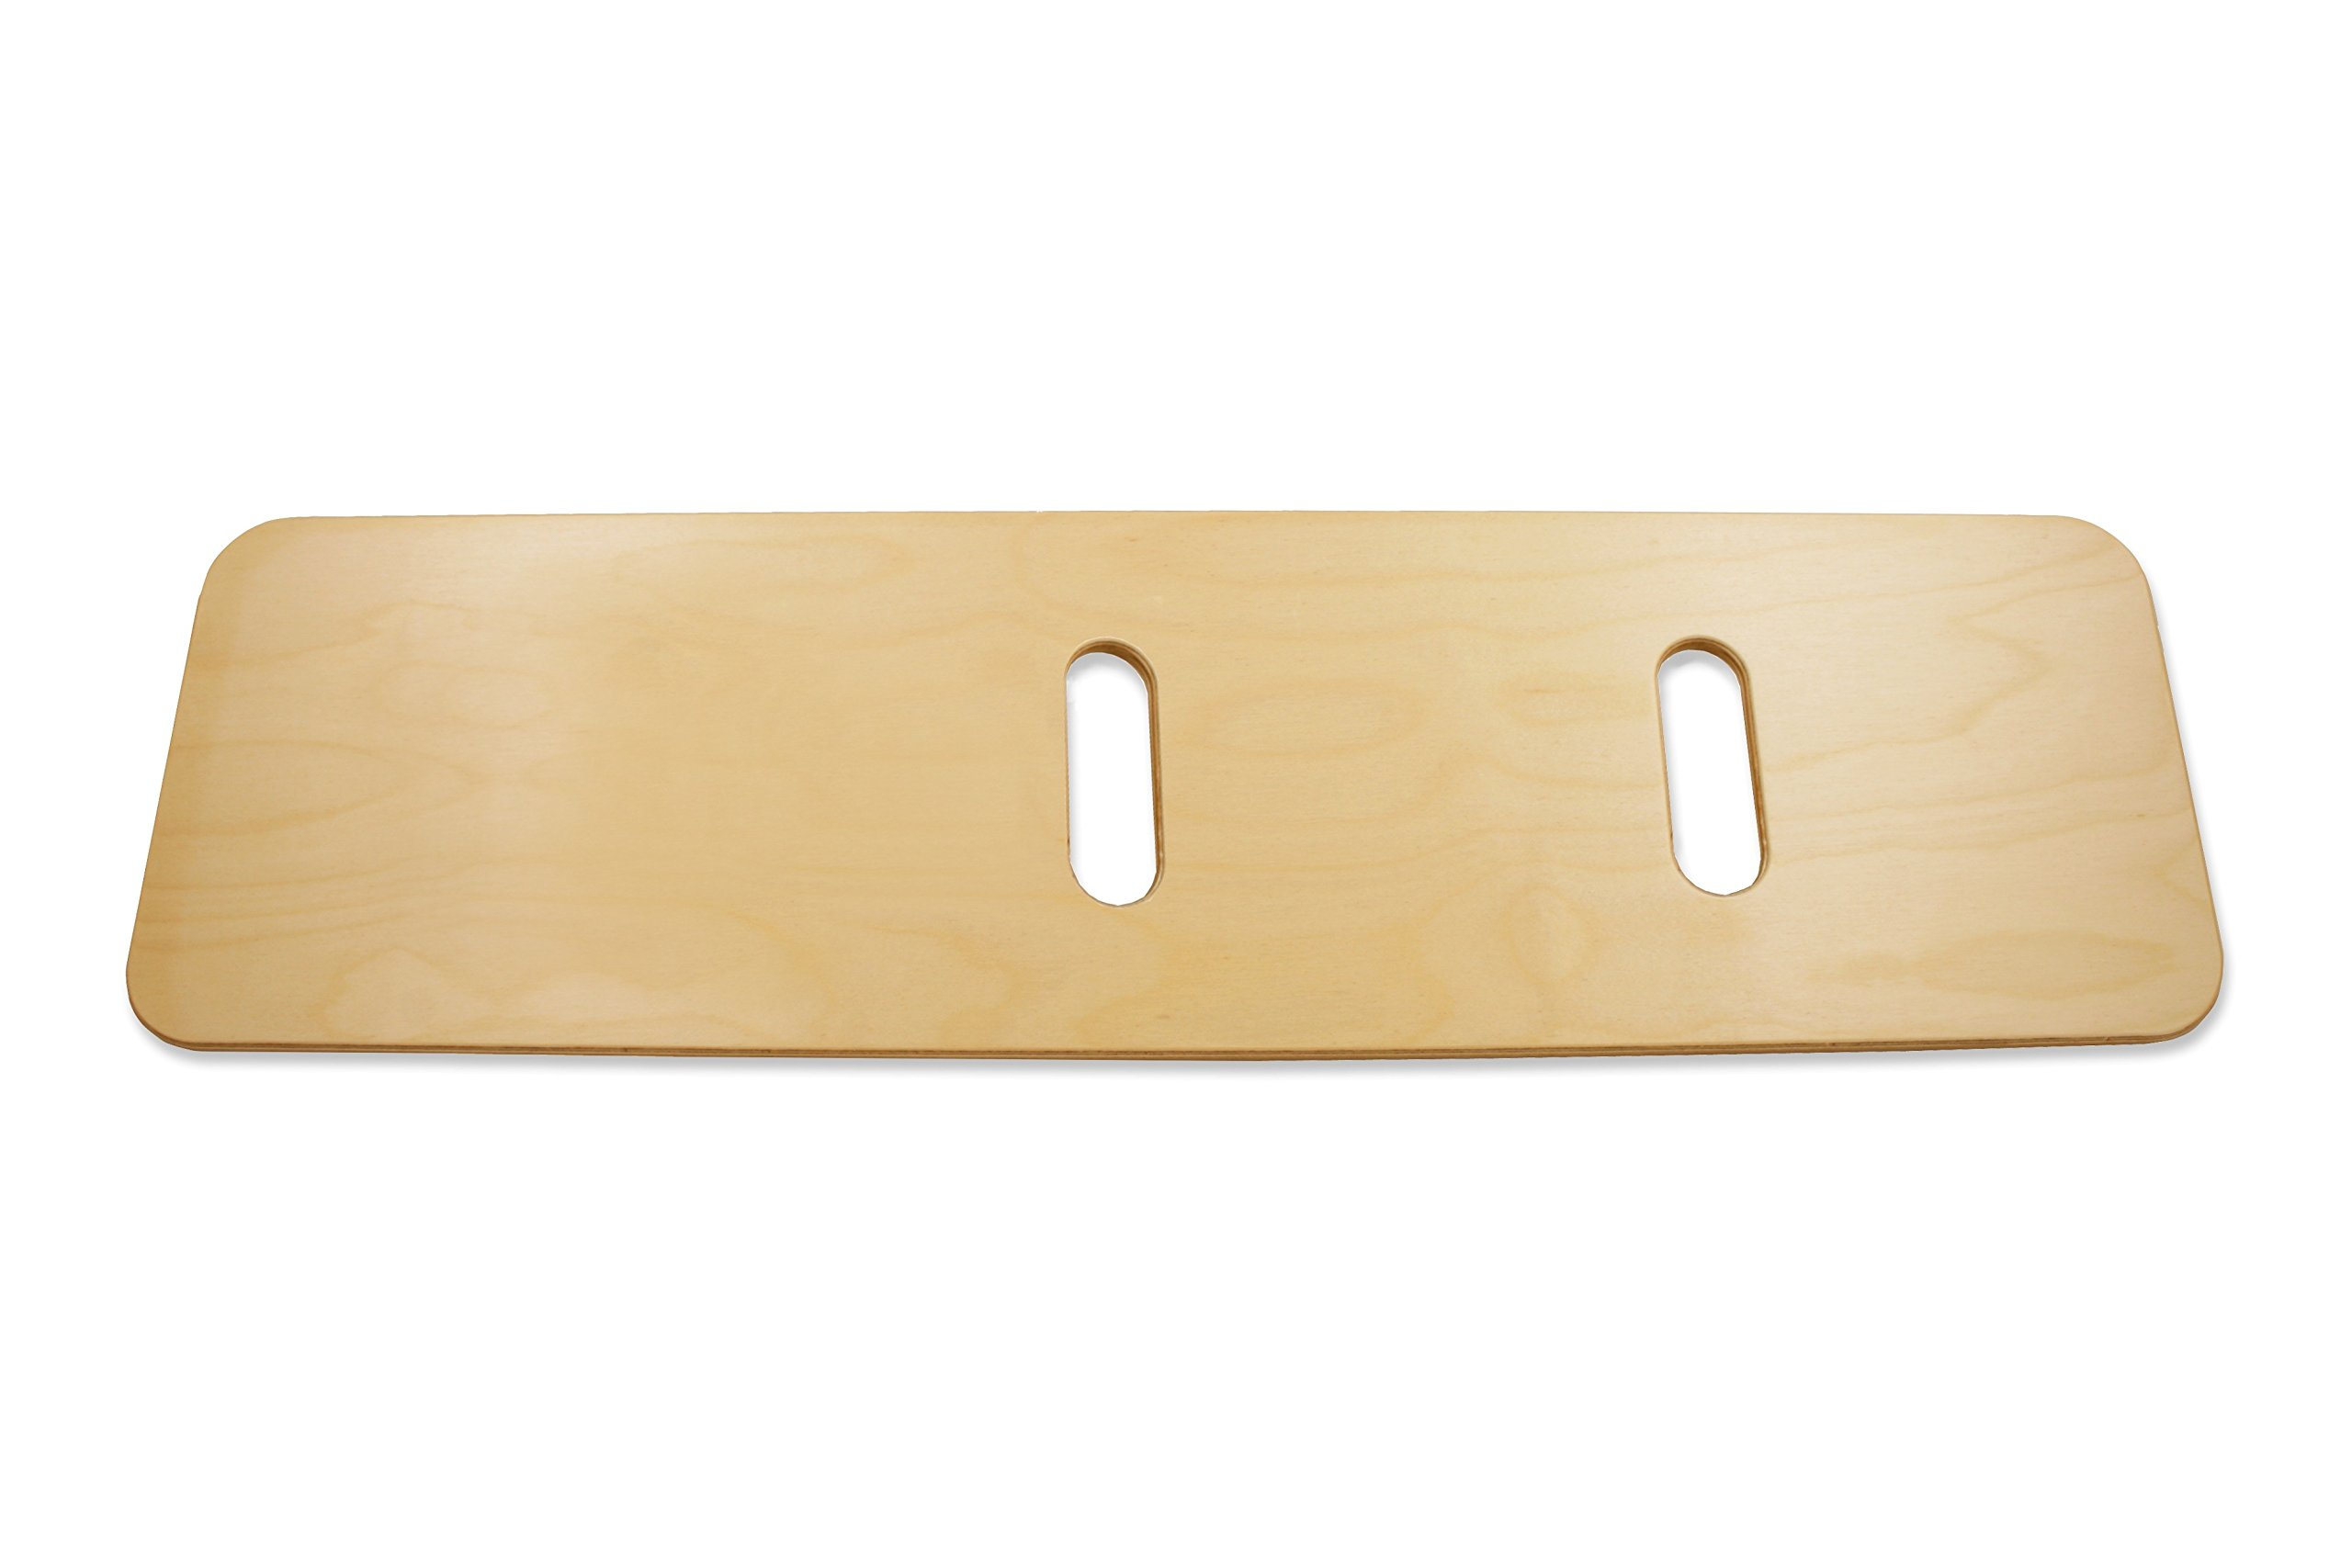 "Rehabilitation Advantage Extra Long Durable Bariatric Birch Wood Transfer Board 11/16"" Thick x 40"" Long with 2 Hand Holes"